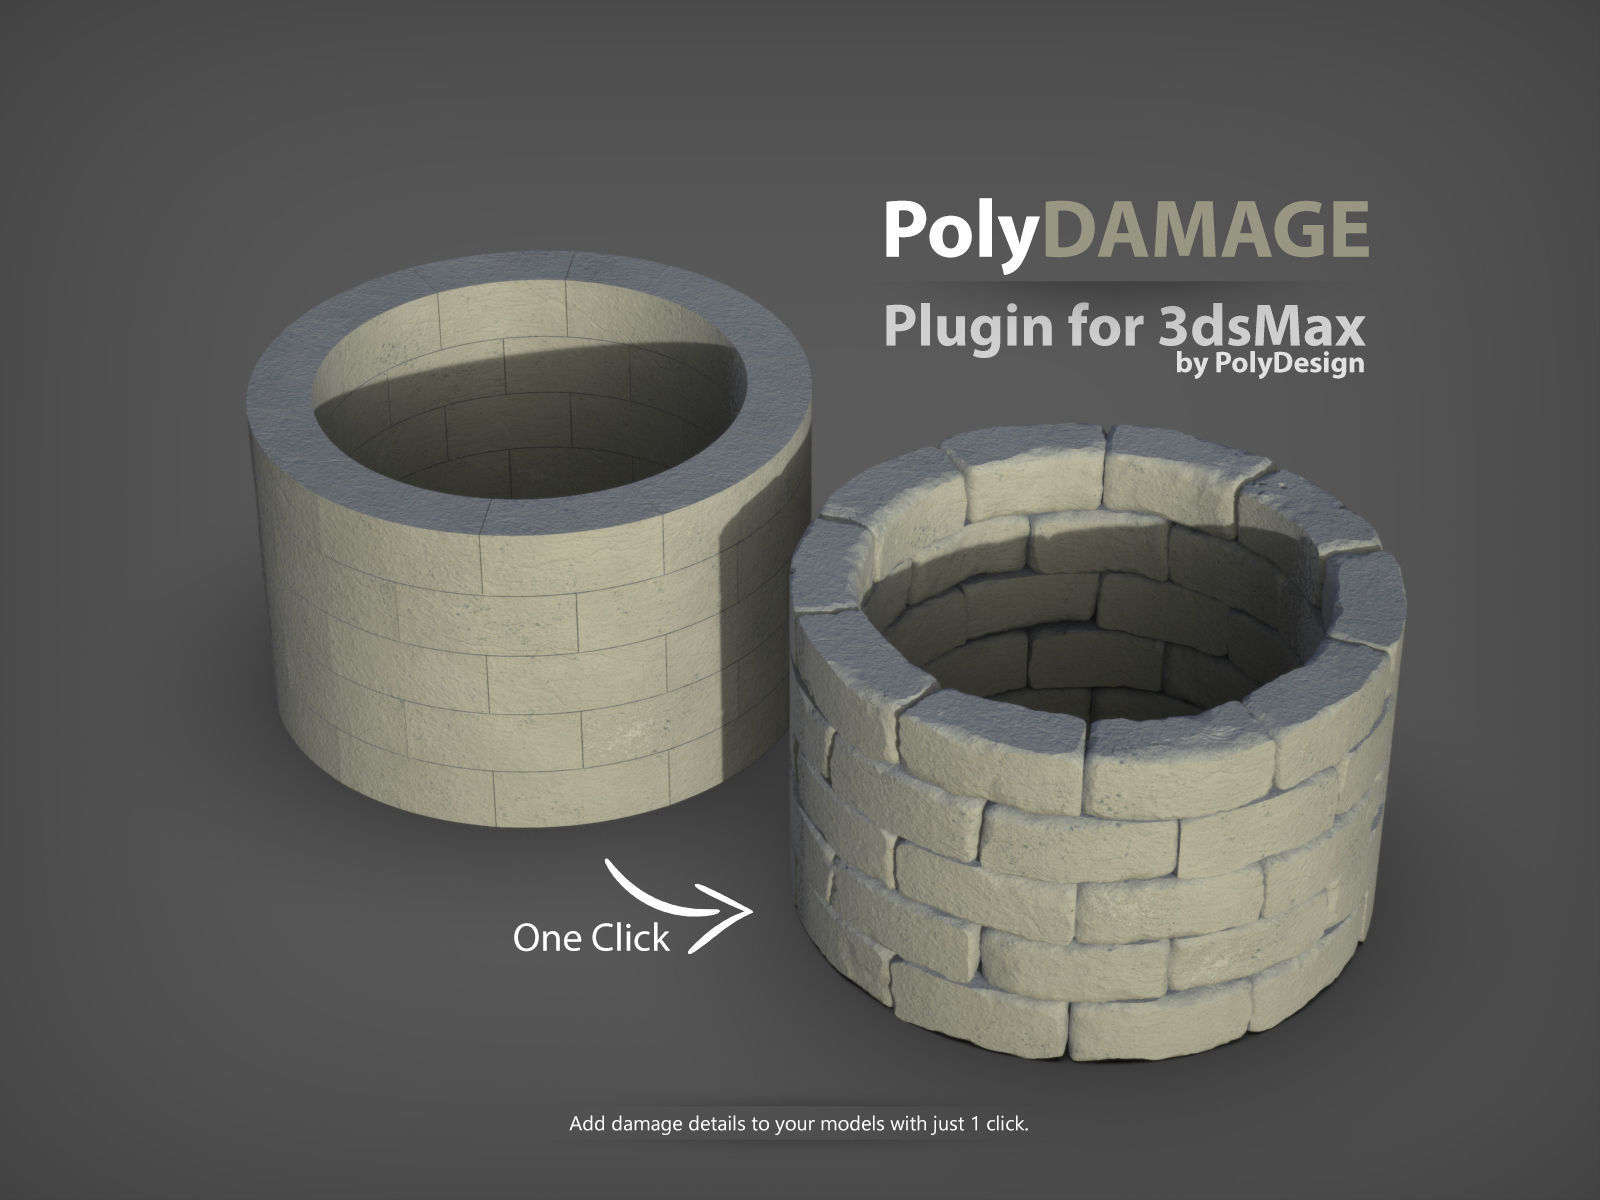 PolyDamage for 3dsMax